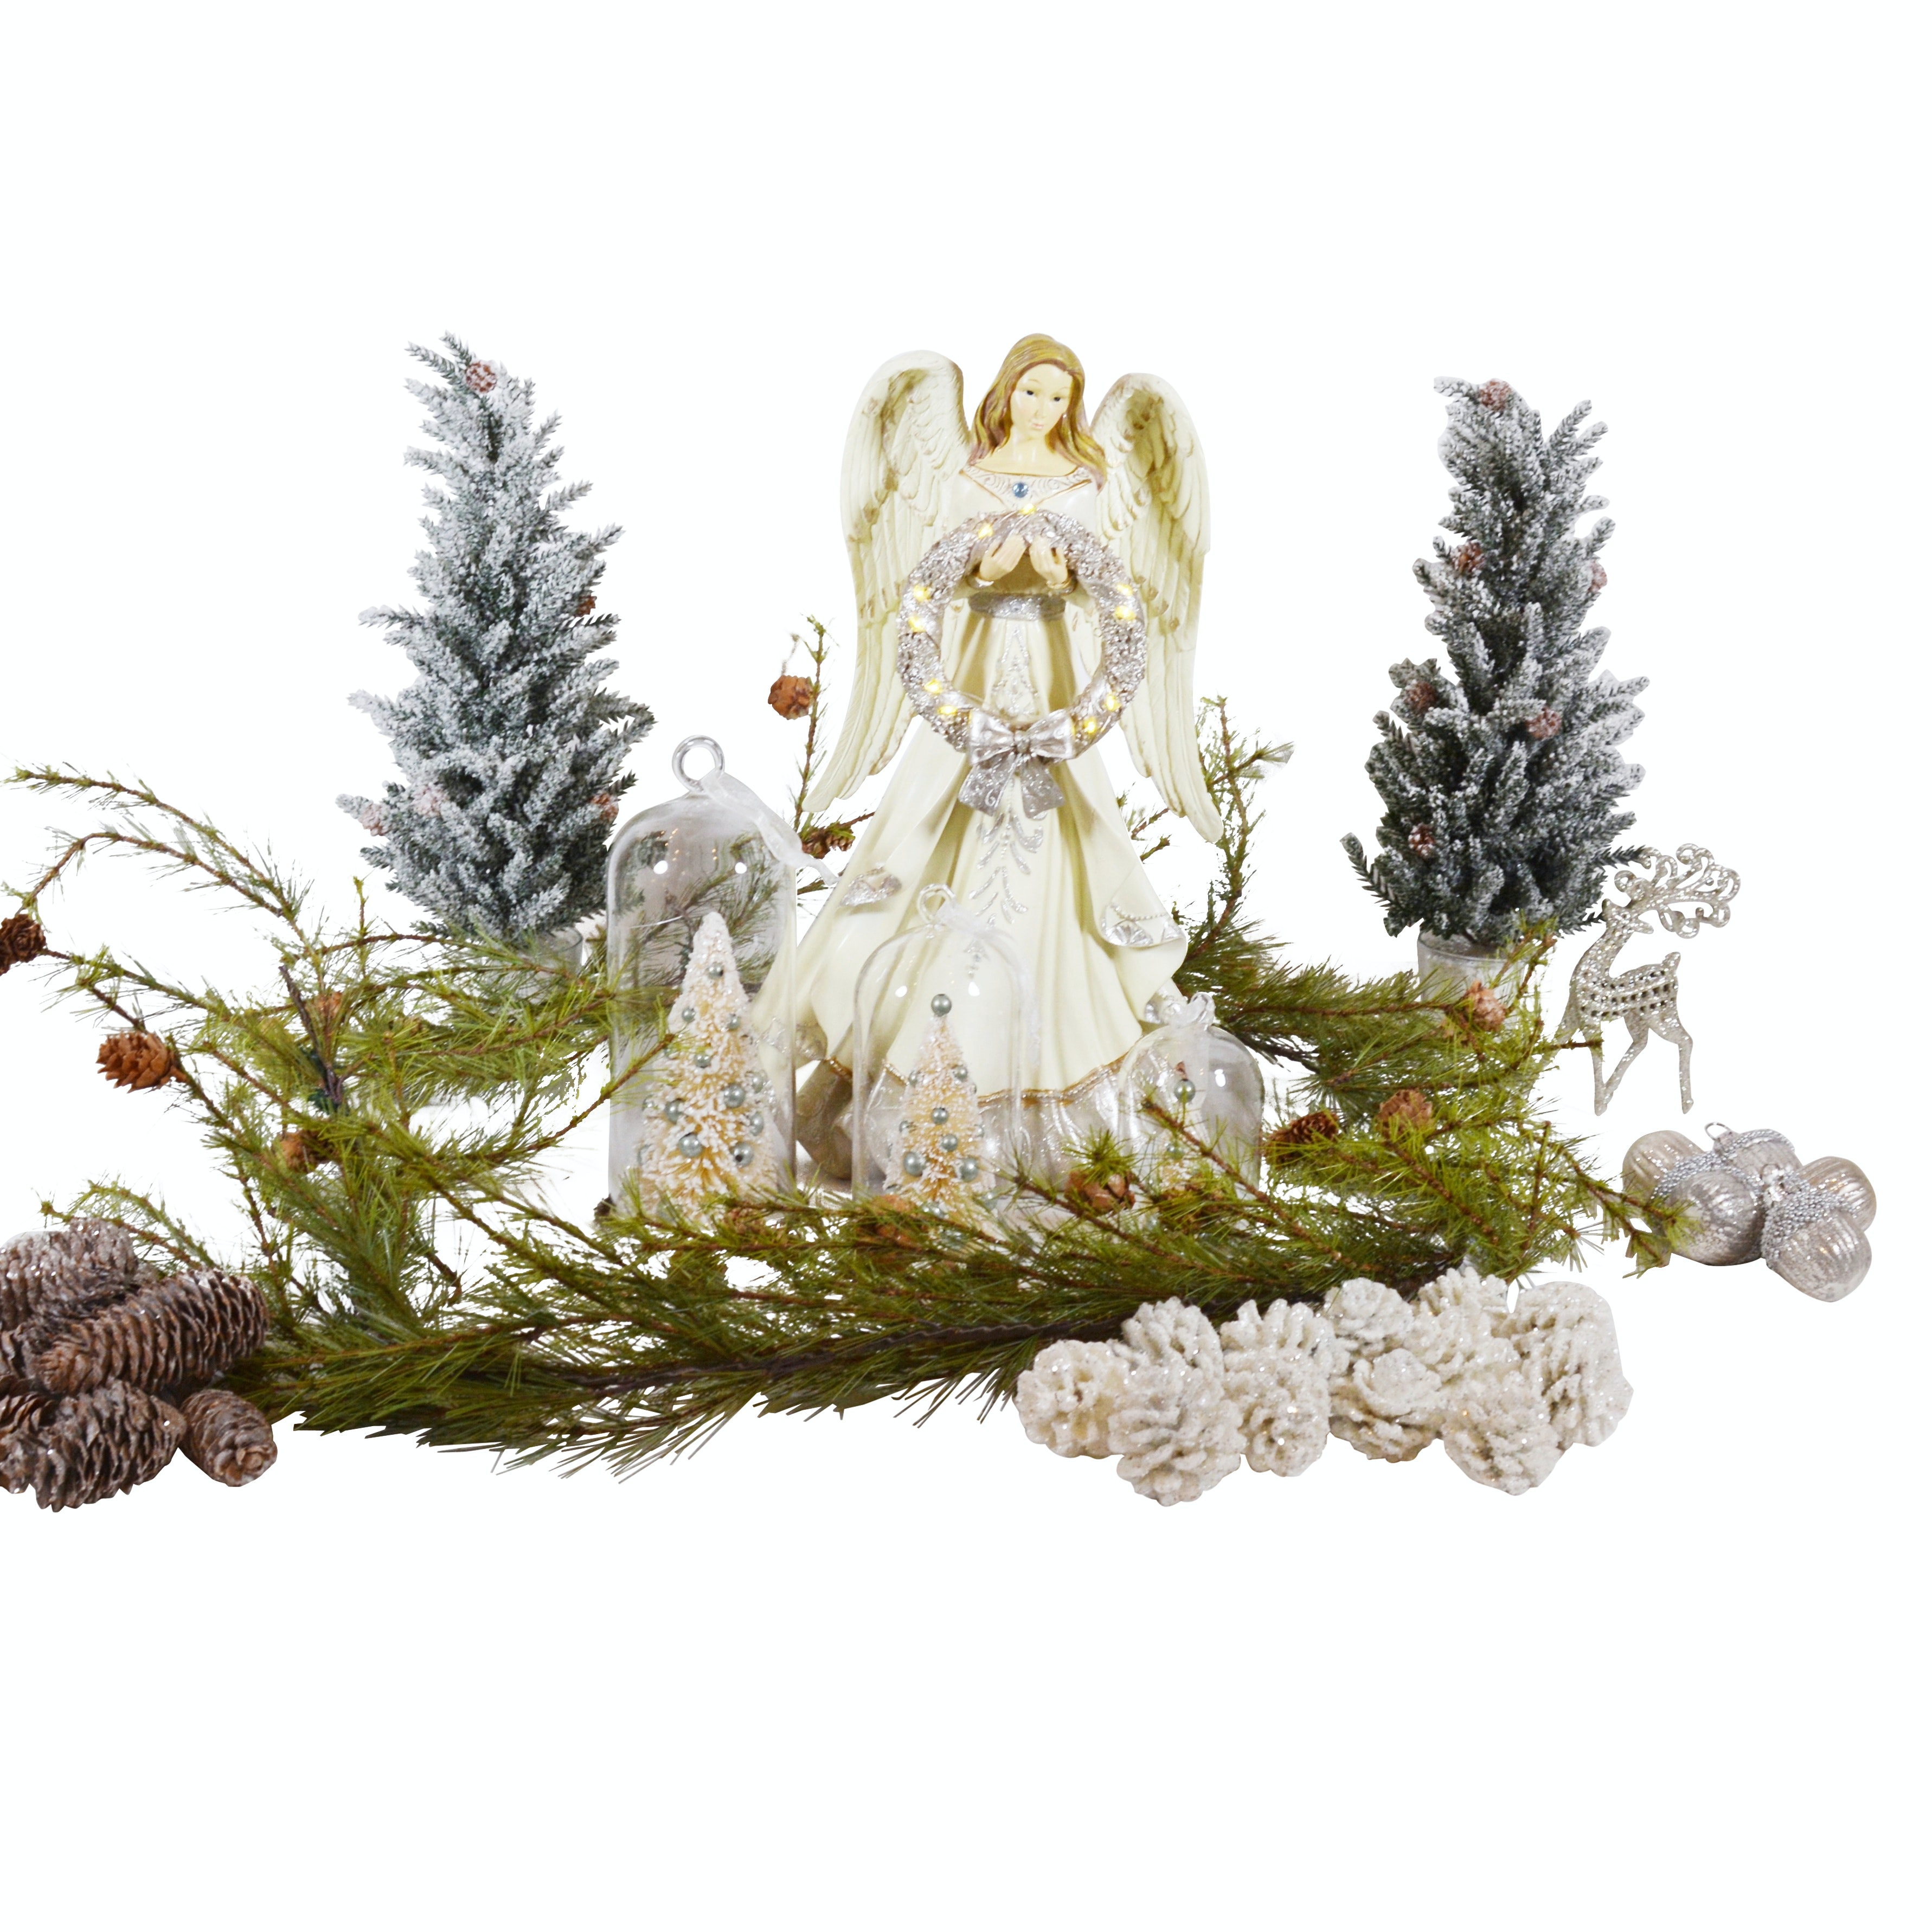 Christmas Decorations Featuring an Illuminated Angel Statue